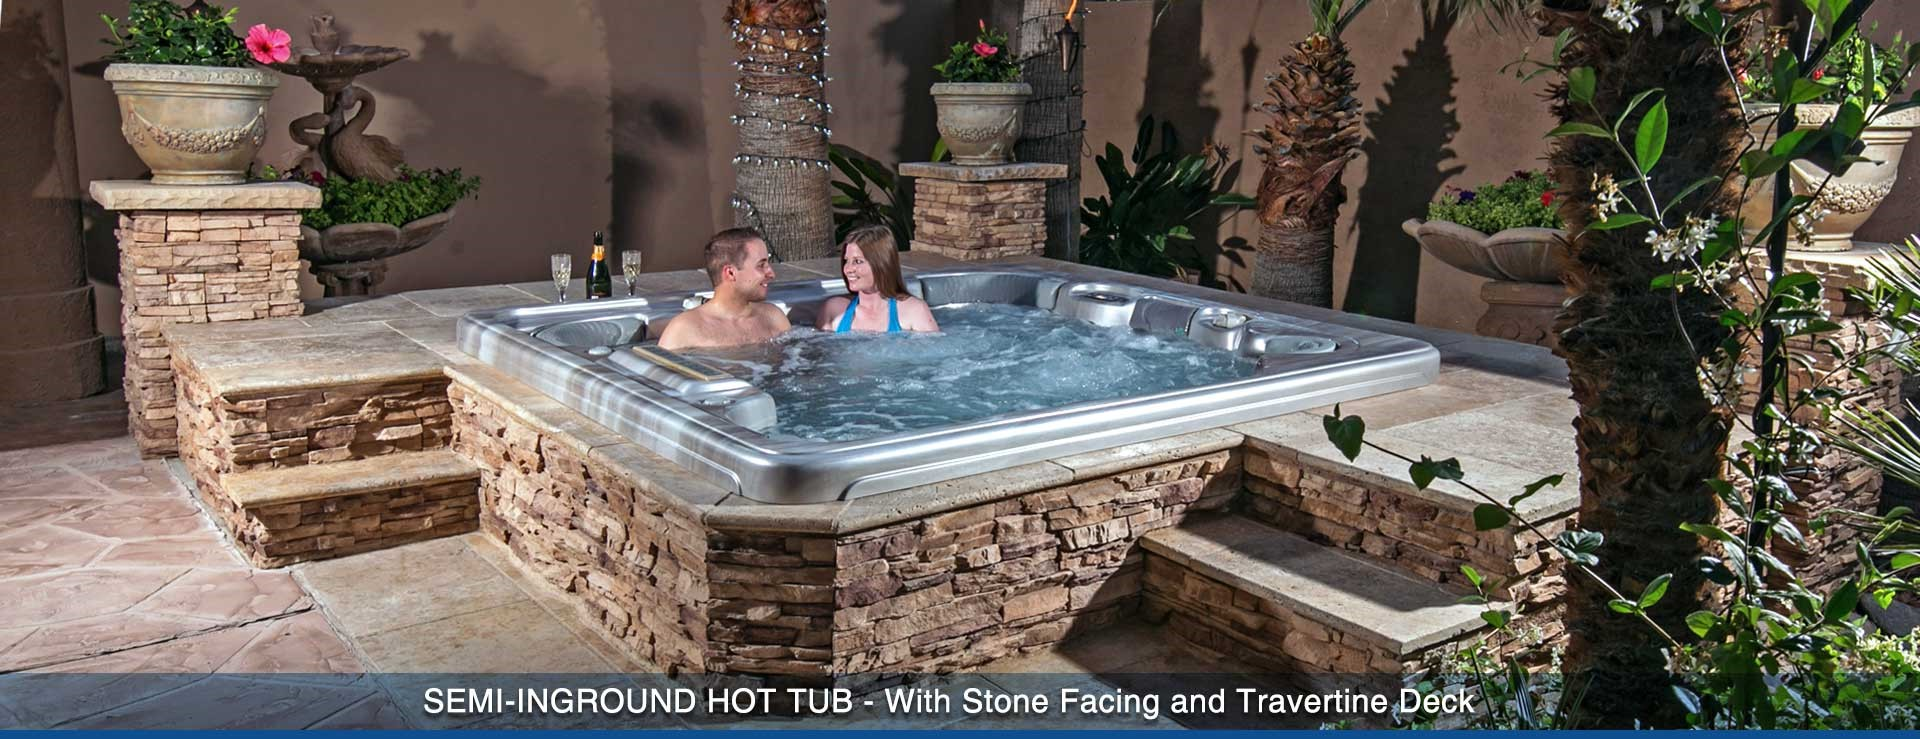 Creative Spa Designs Premier Inground Spa Portable Hot Tubs Spa And Swim Spa Store In Las Vegas